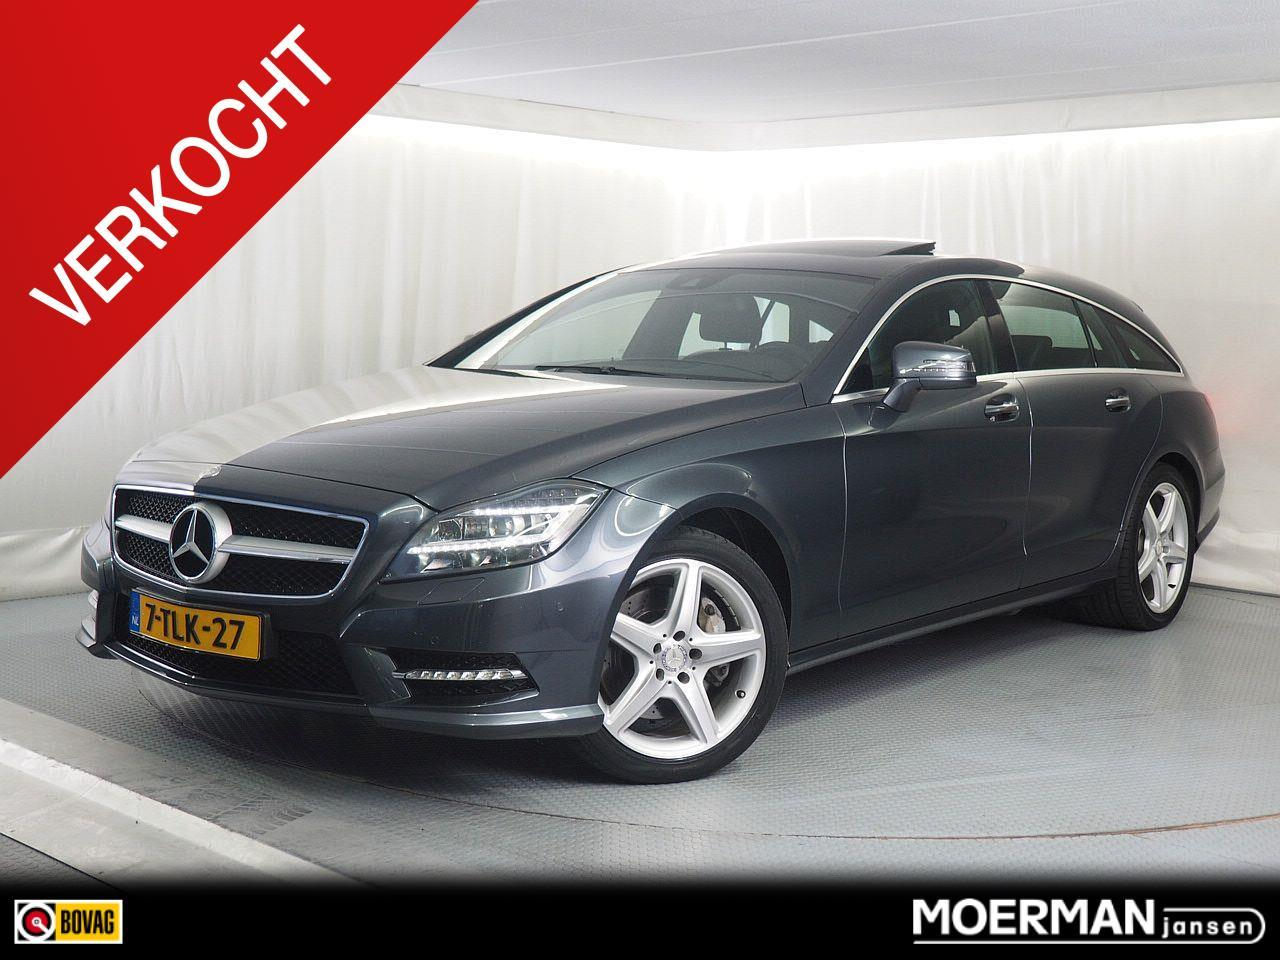 Mercedes-benz Cls-klasse Shooting brake 350 luxury verkocht